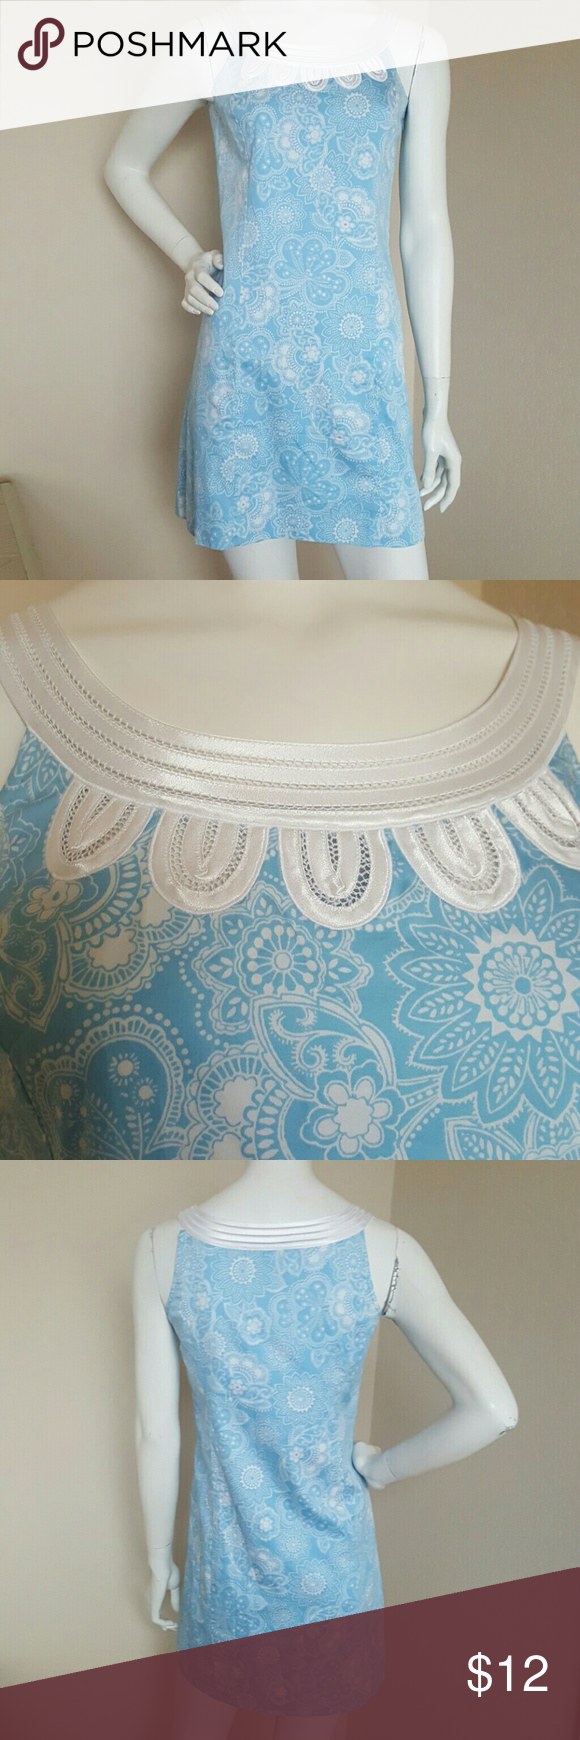 Ann Taylor blue pastel dress size 0P NWOT Classy dress New Without Tag Ann Taylor Dresses Mini